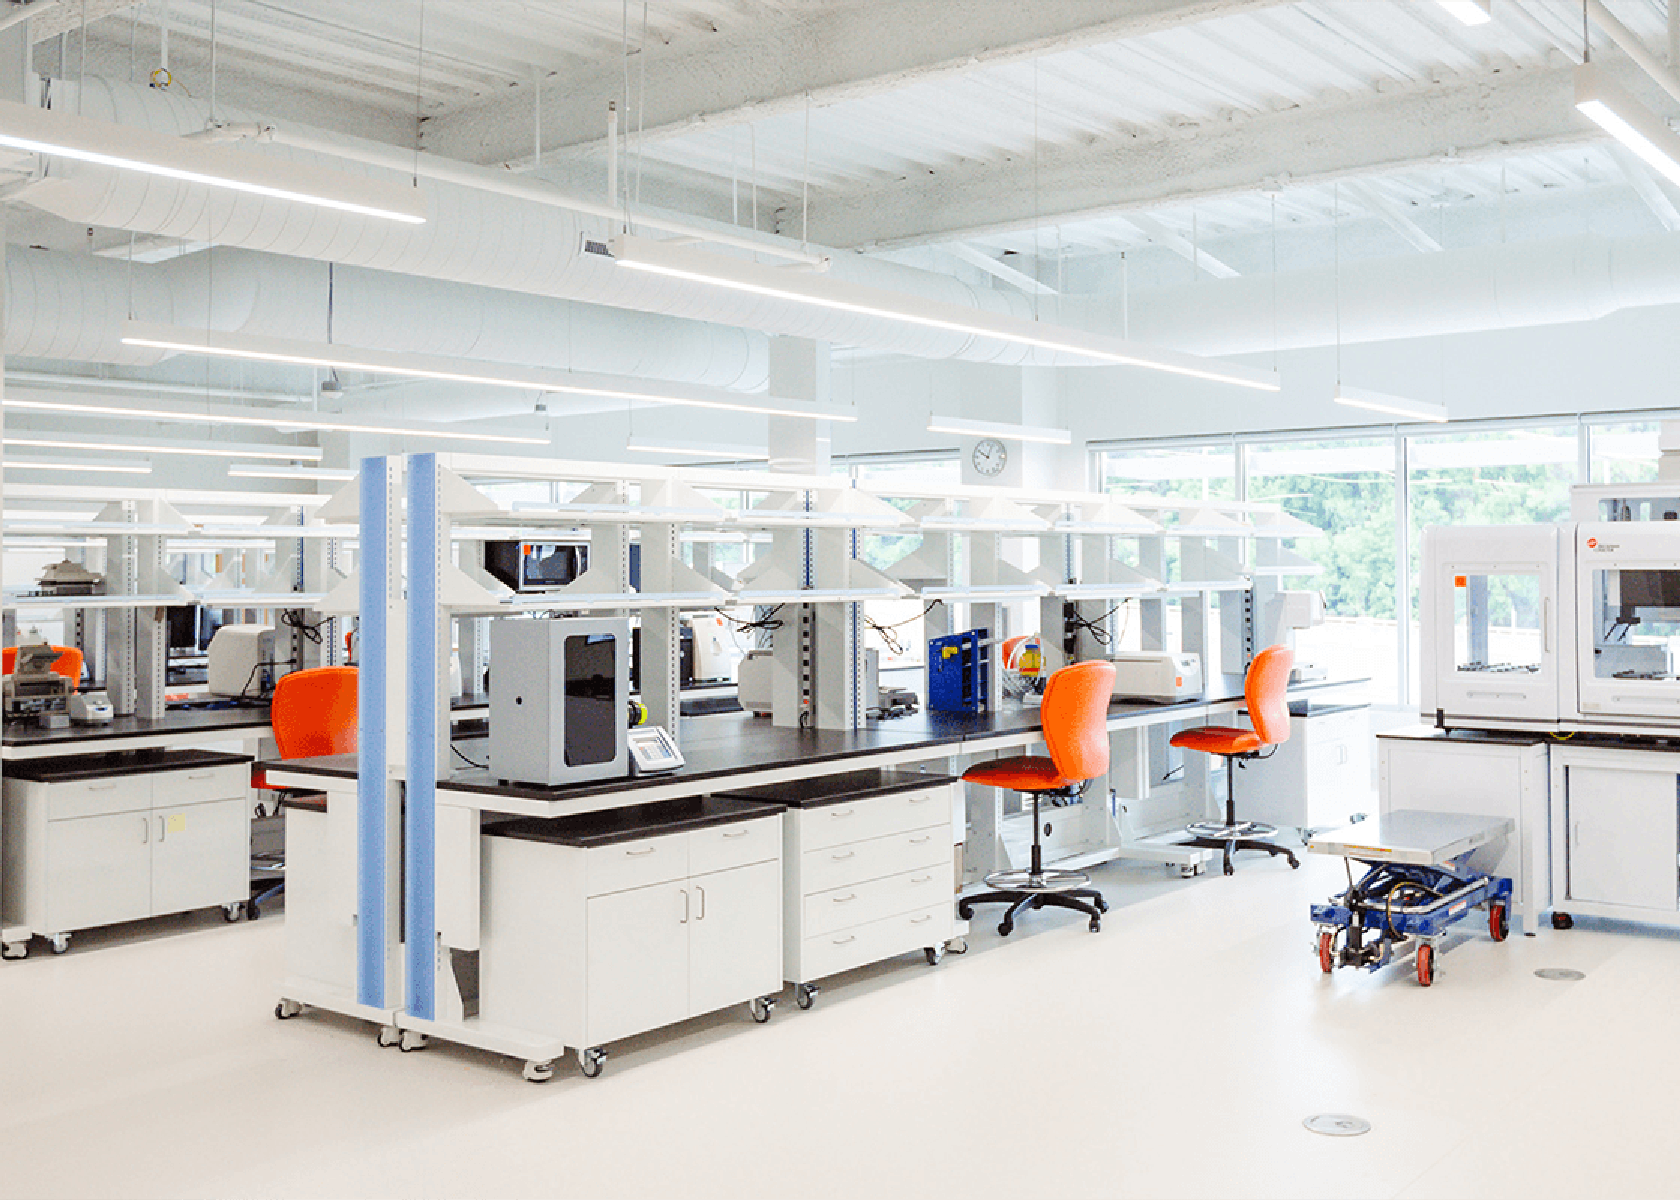 Bright and clean wet-lab space